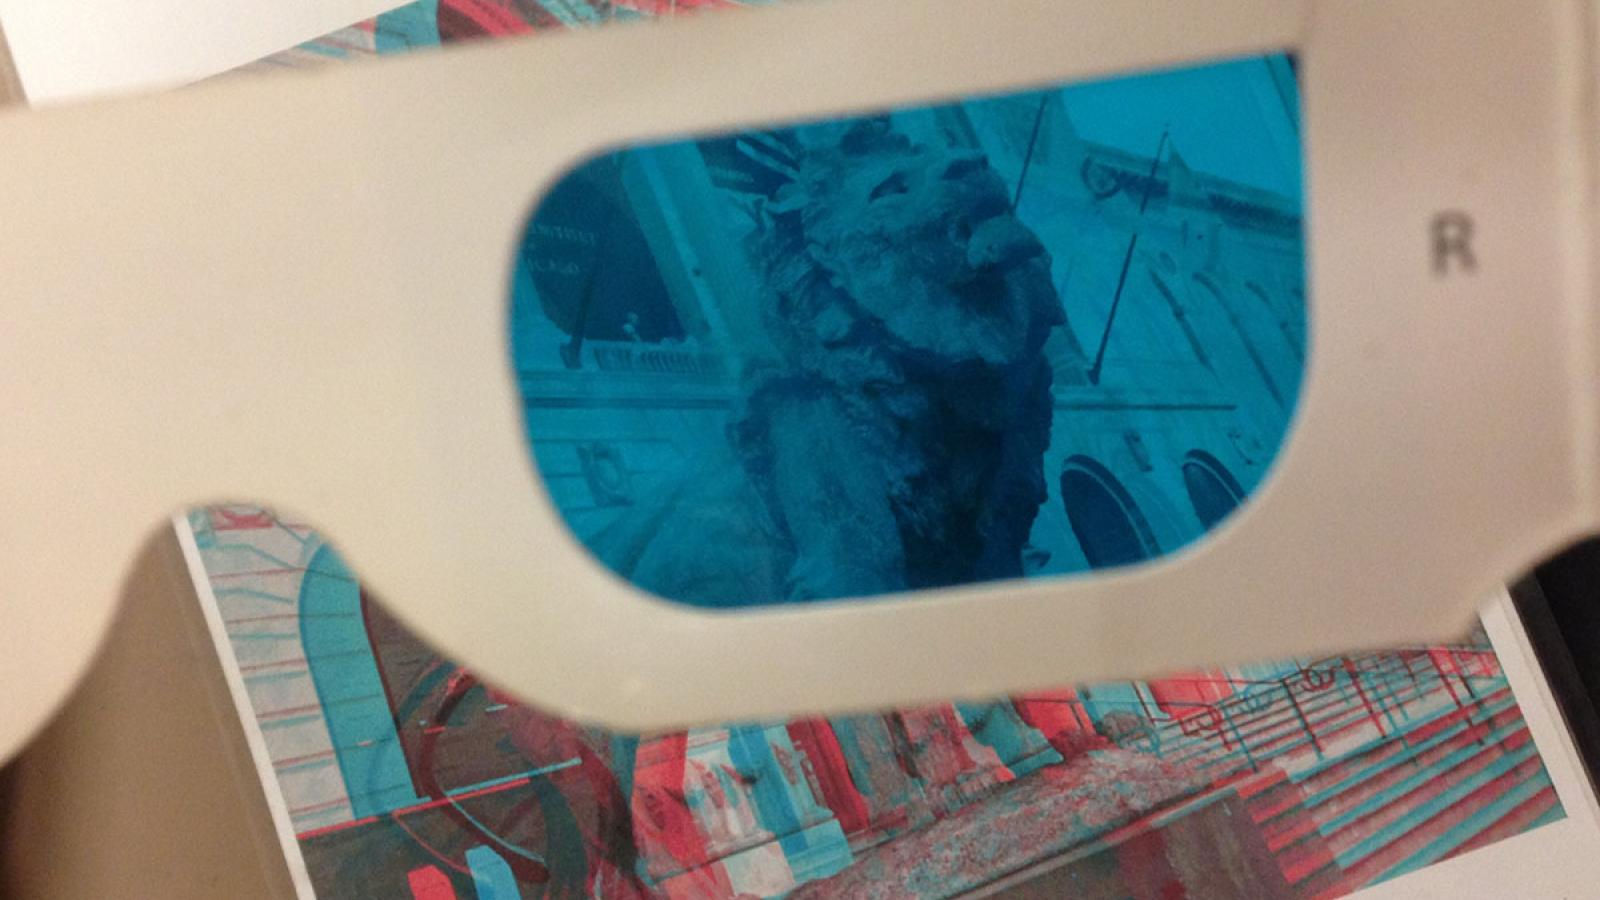 Photograph of 3D glasses and the image of a lion statue popping out